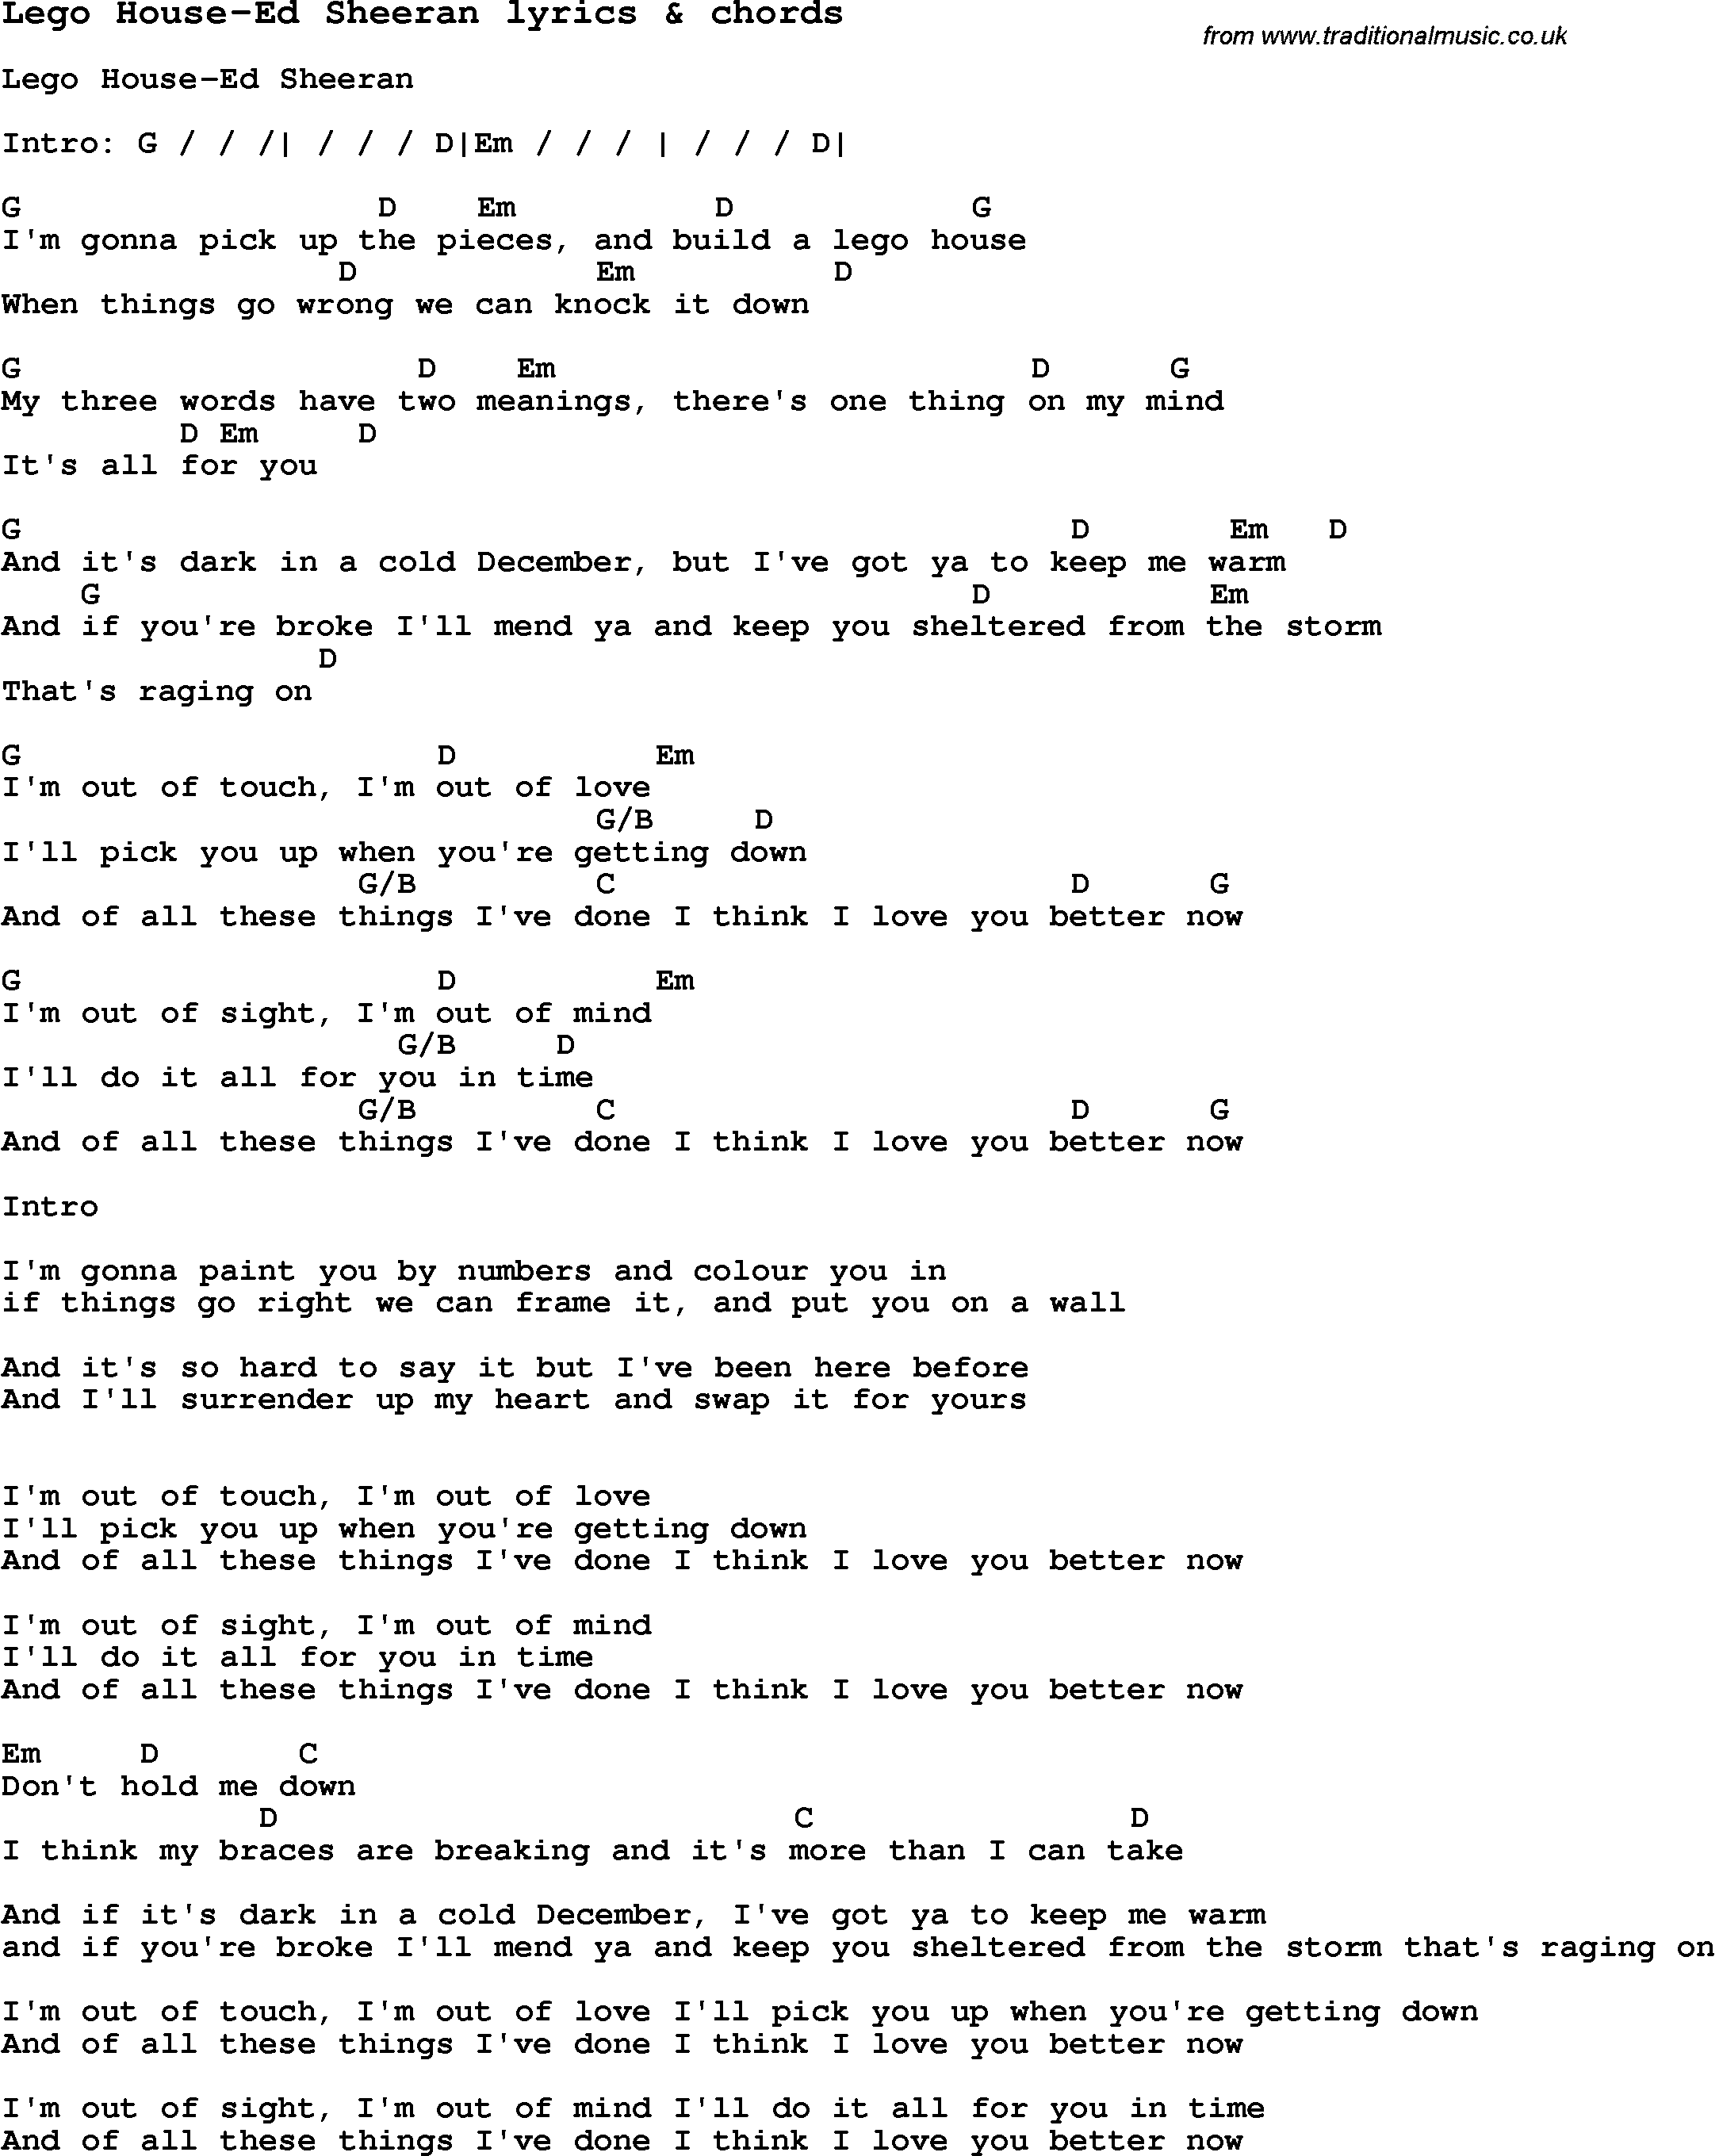 Love song lyrics for lego house ed sheeran with chords for love song lyrics for lego house ed sheeran with chords for ukulele guitar hexwebz Images